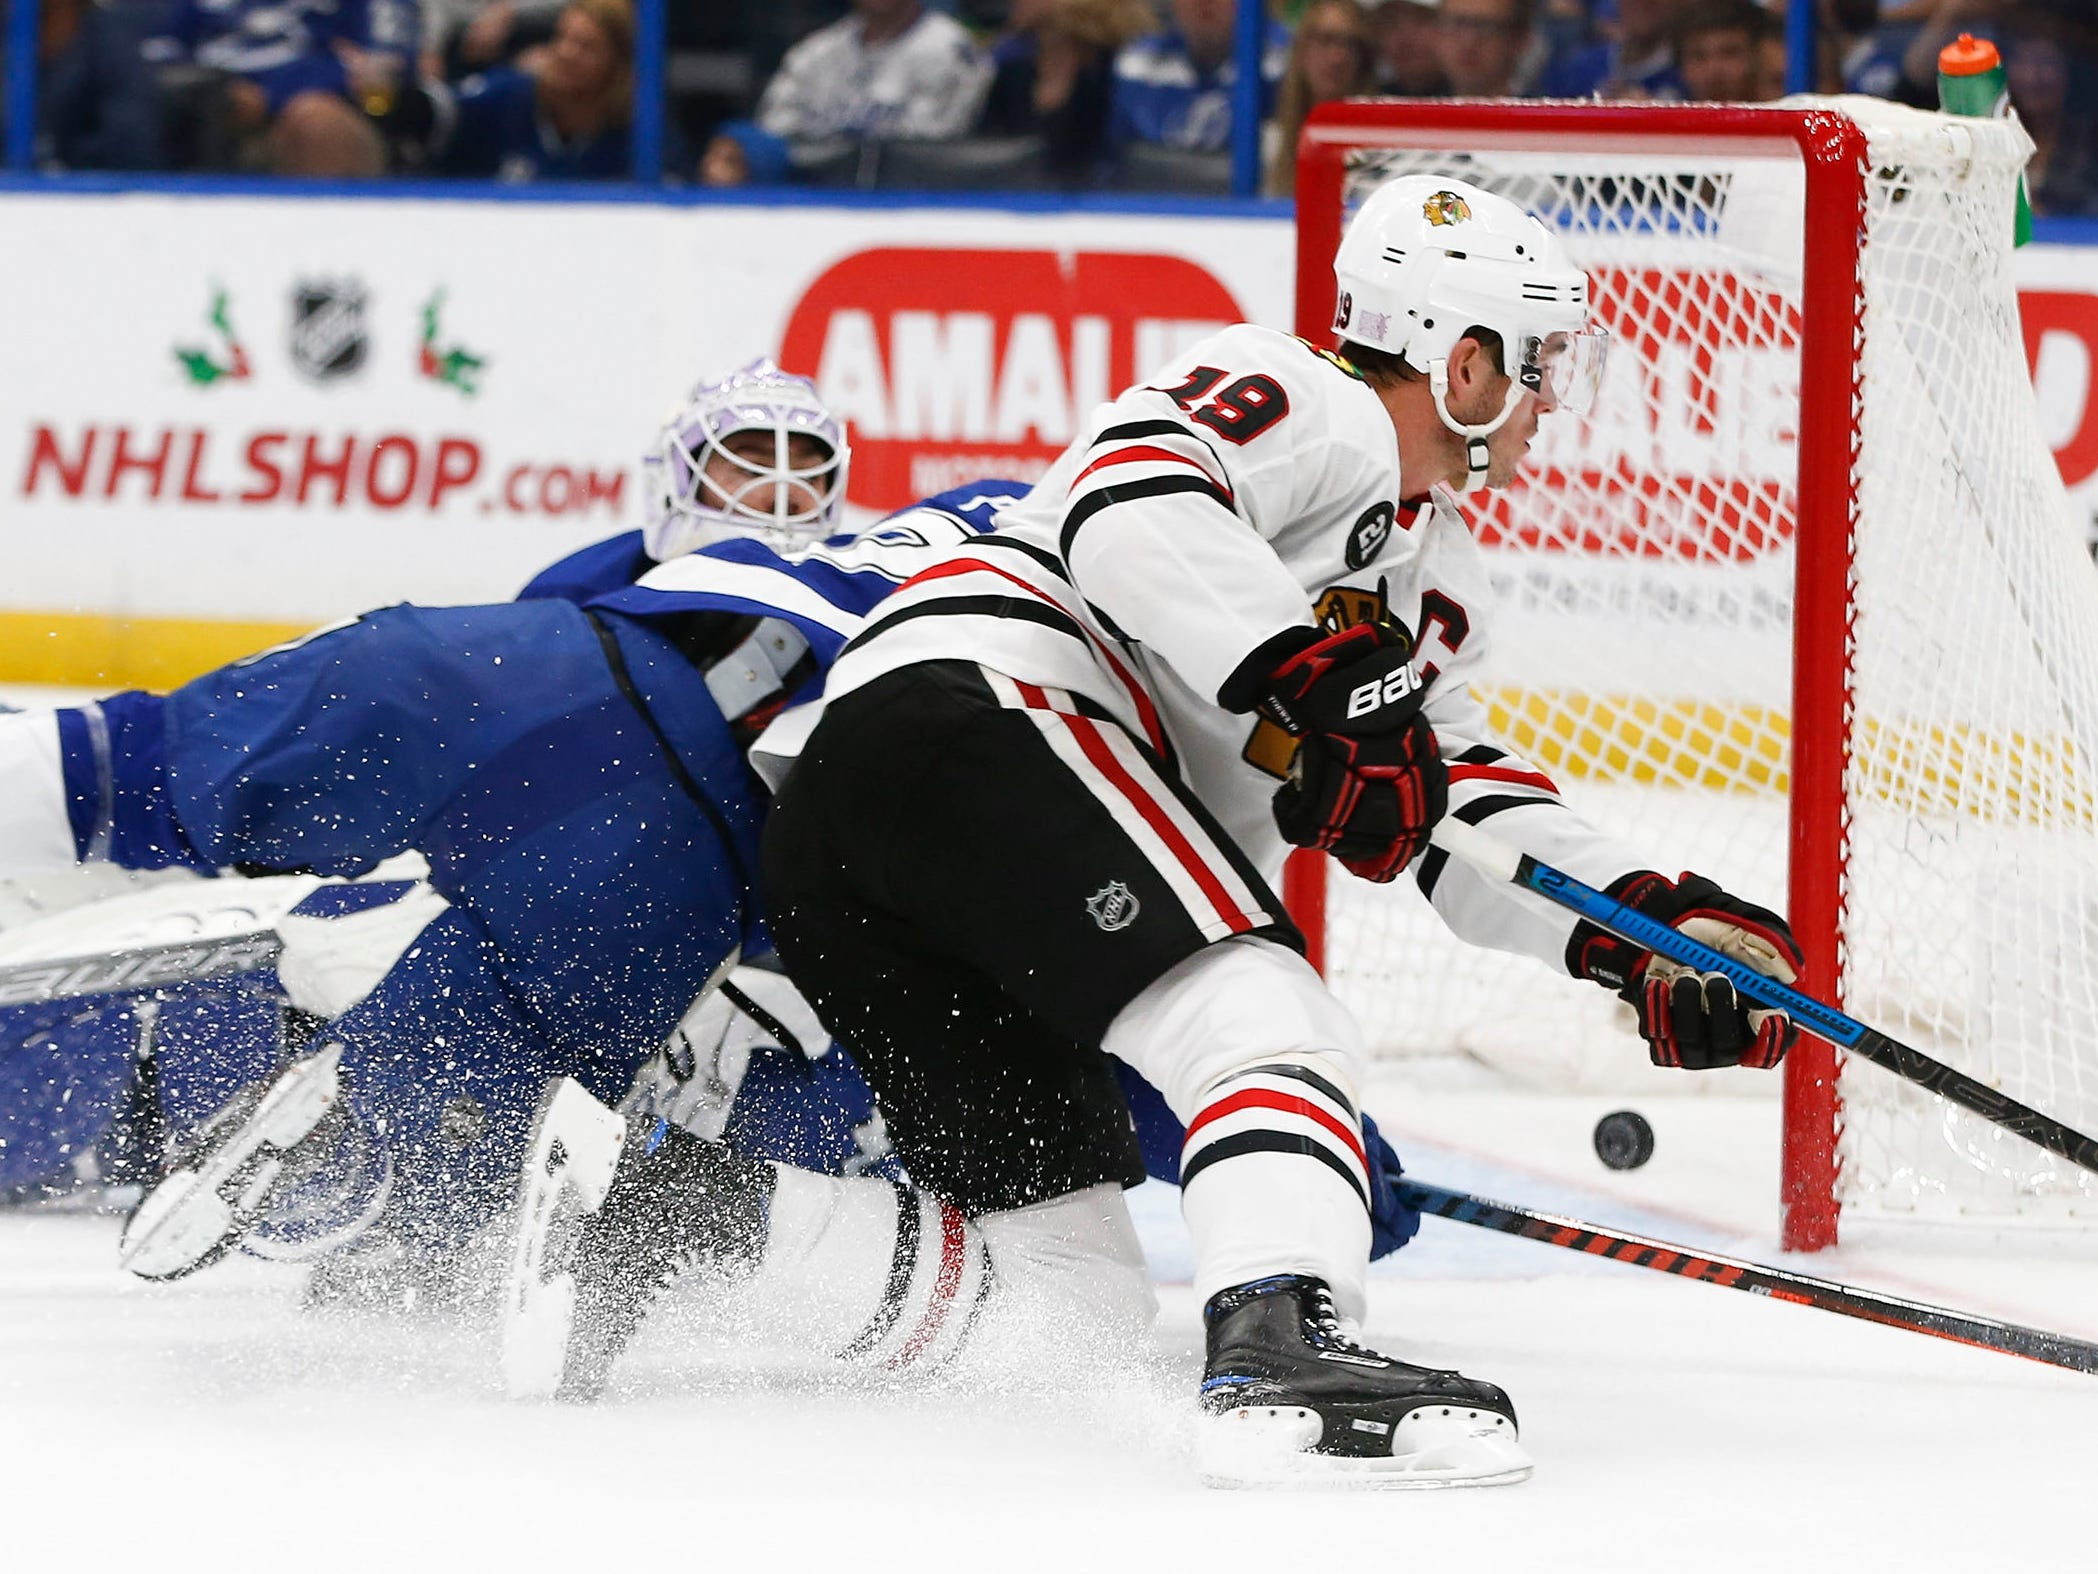 Nov. 23: Chicago Blackhawks center Jonathan Toews maneuvers to score as Tampa Bay Lightning center Brayden Point collides with goaltender Louis Domingue.